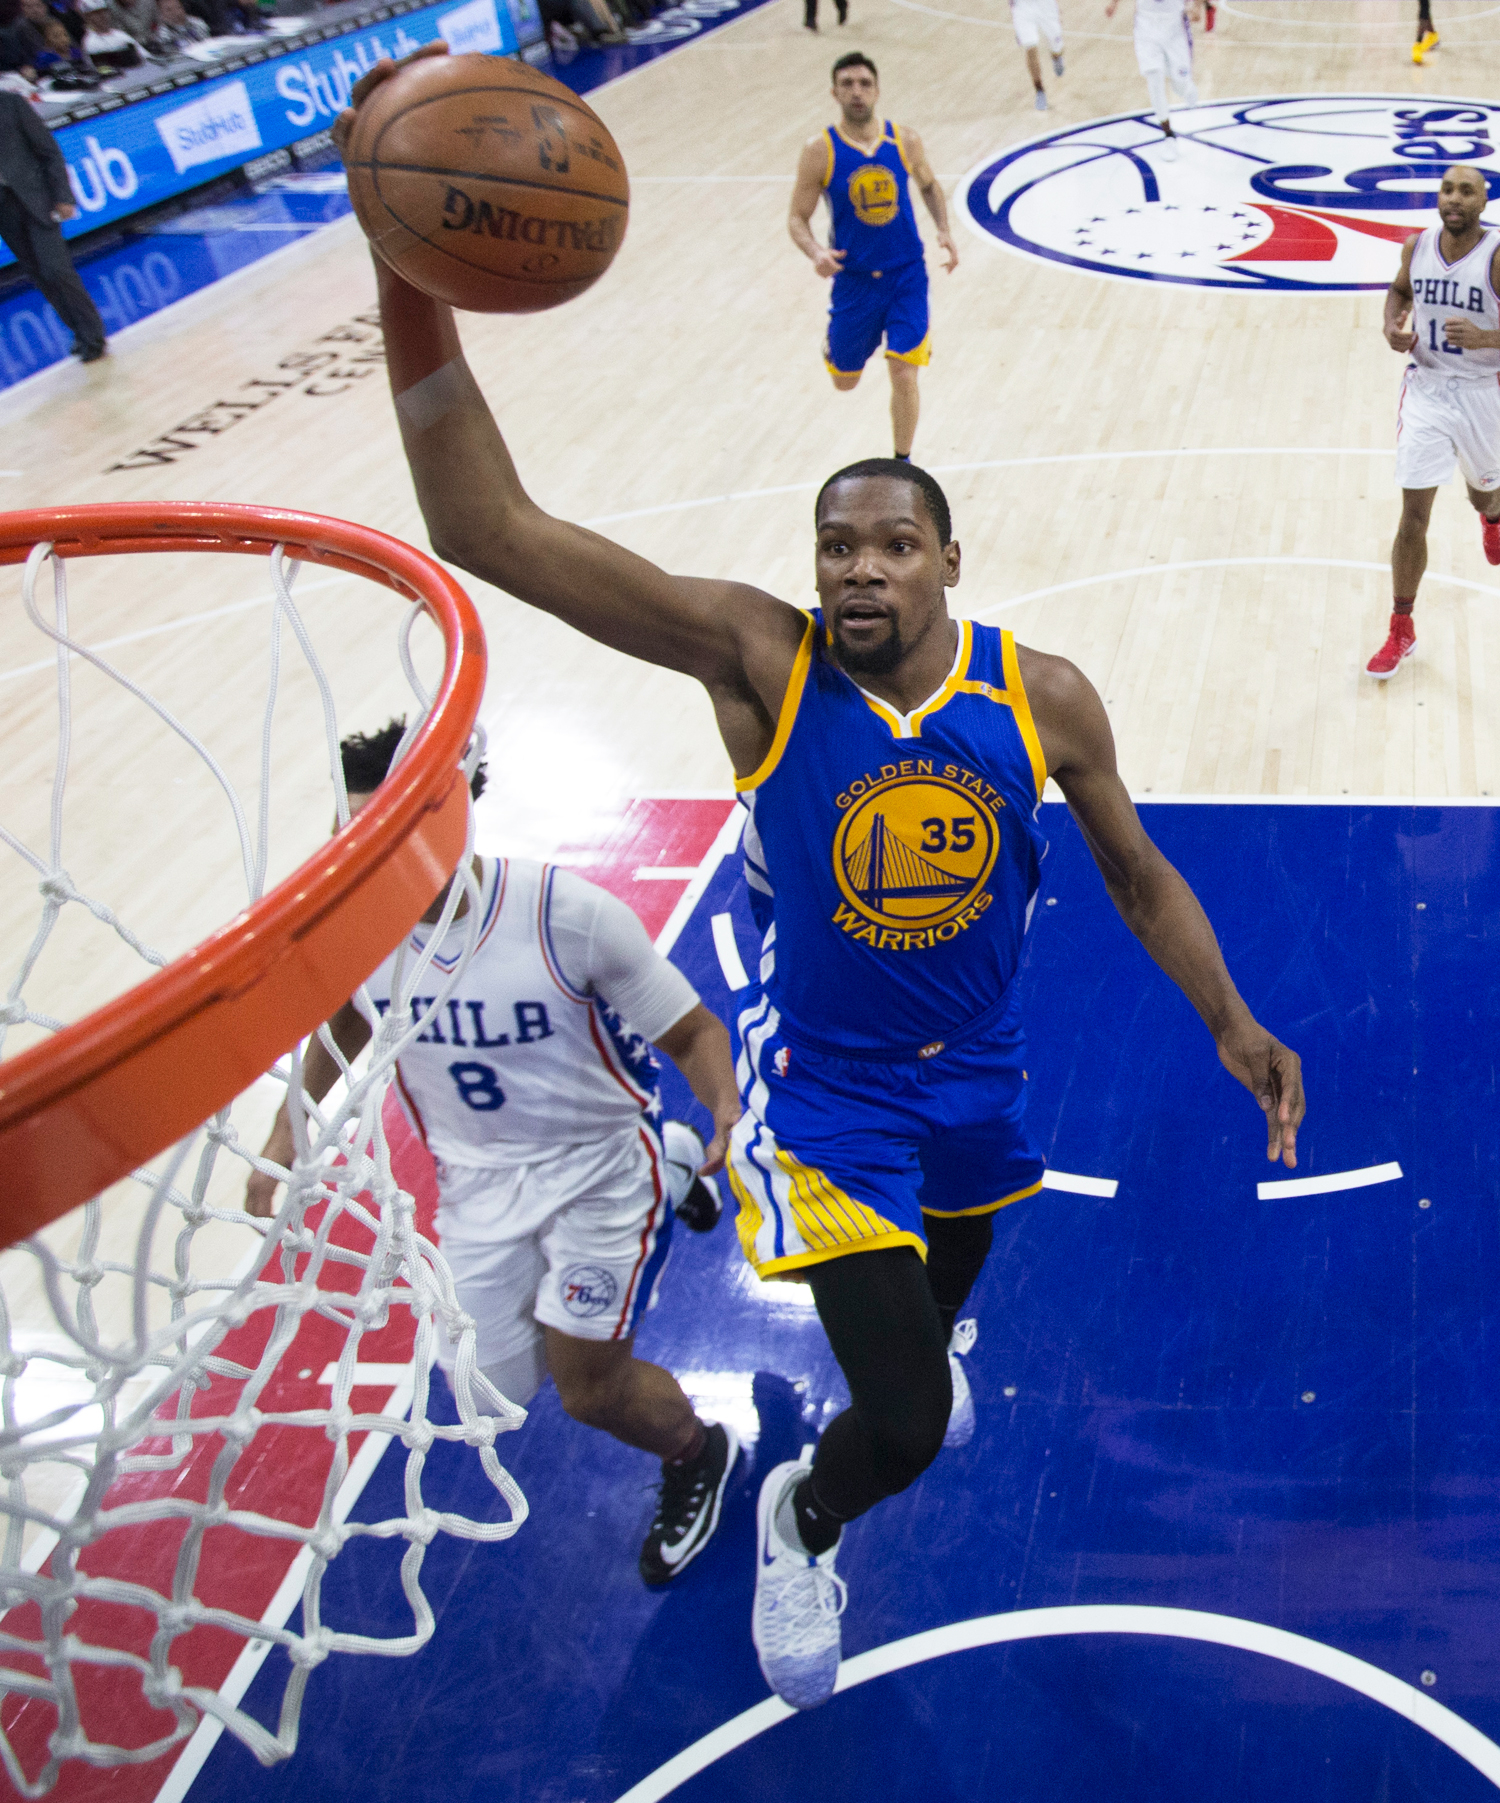 a595a6663cdc Kevin Durant s Injury Might Help Golden State Warriors – Rolling Stone